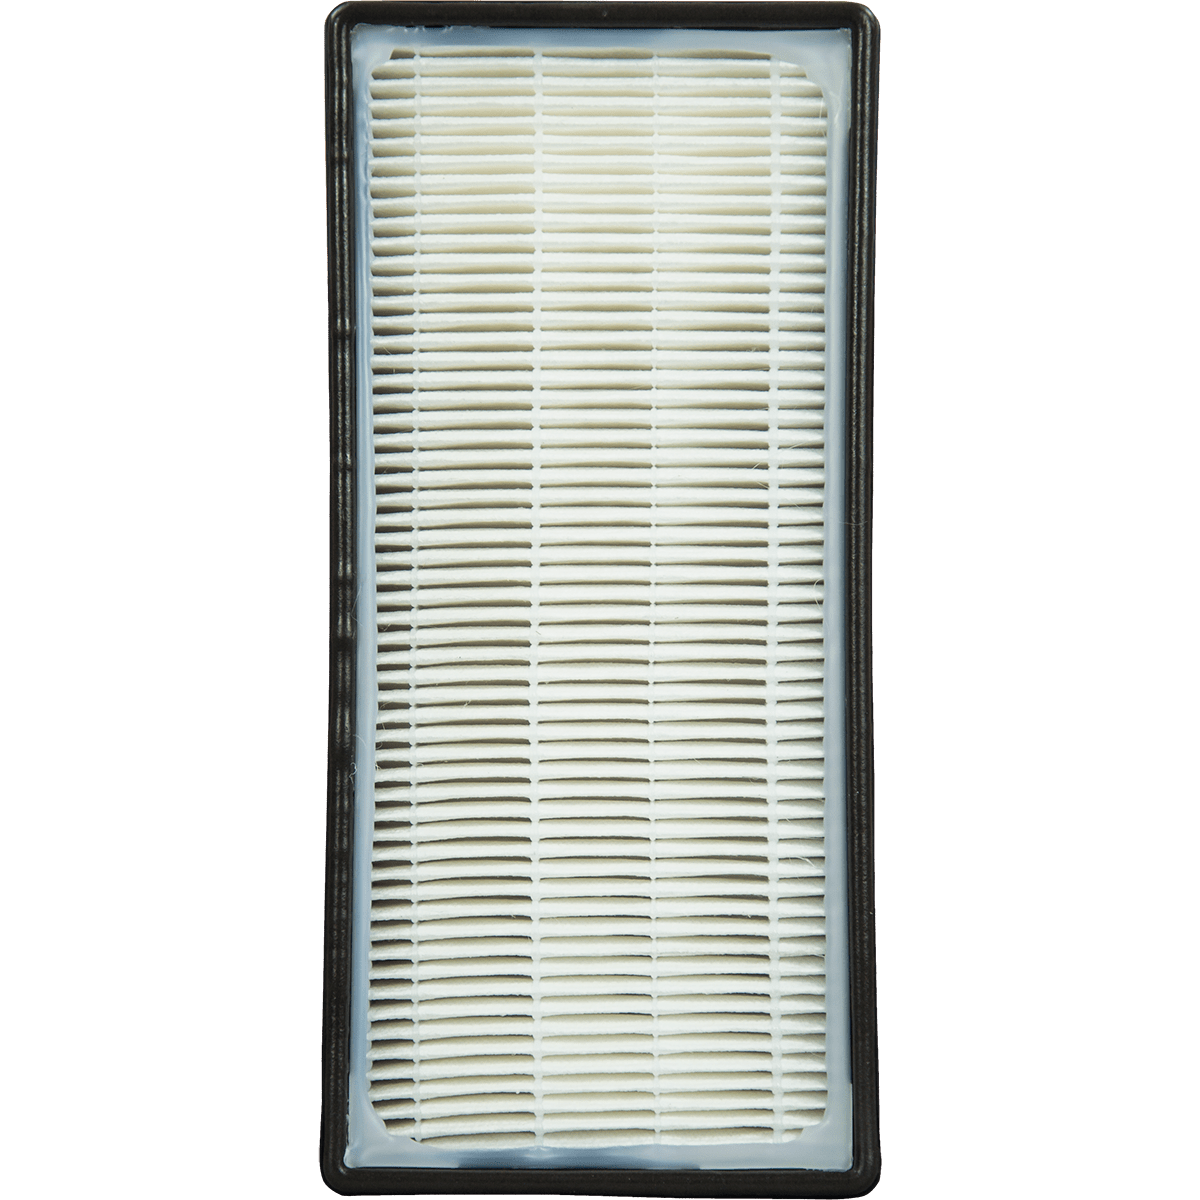 Filter-Monster Replacement Filter Comparable to Honeywell HEPA Filter H wh6629